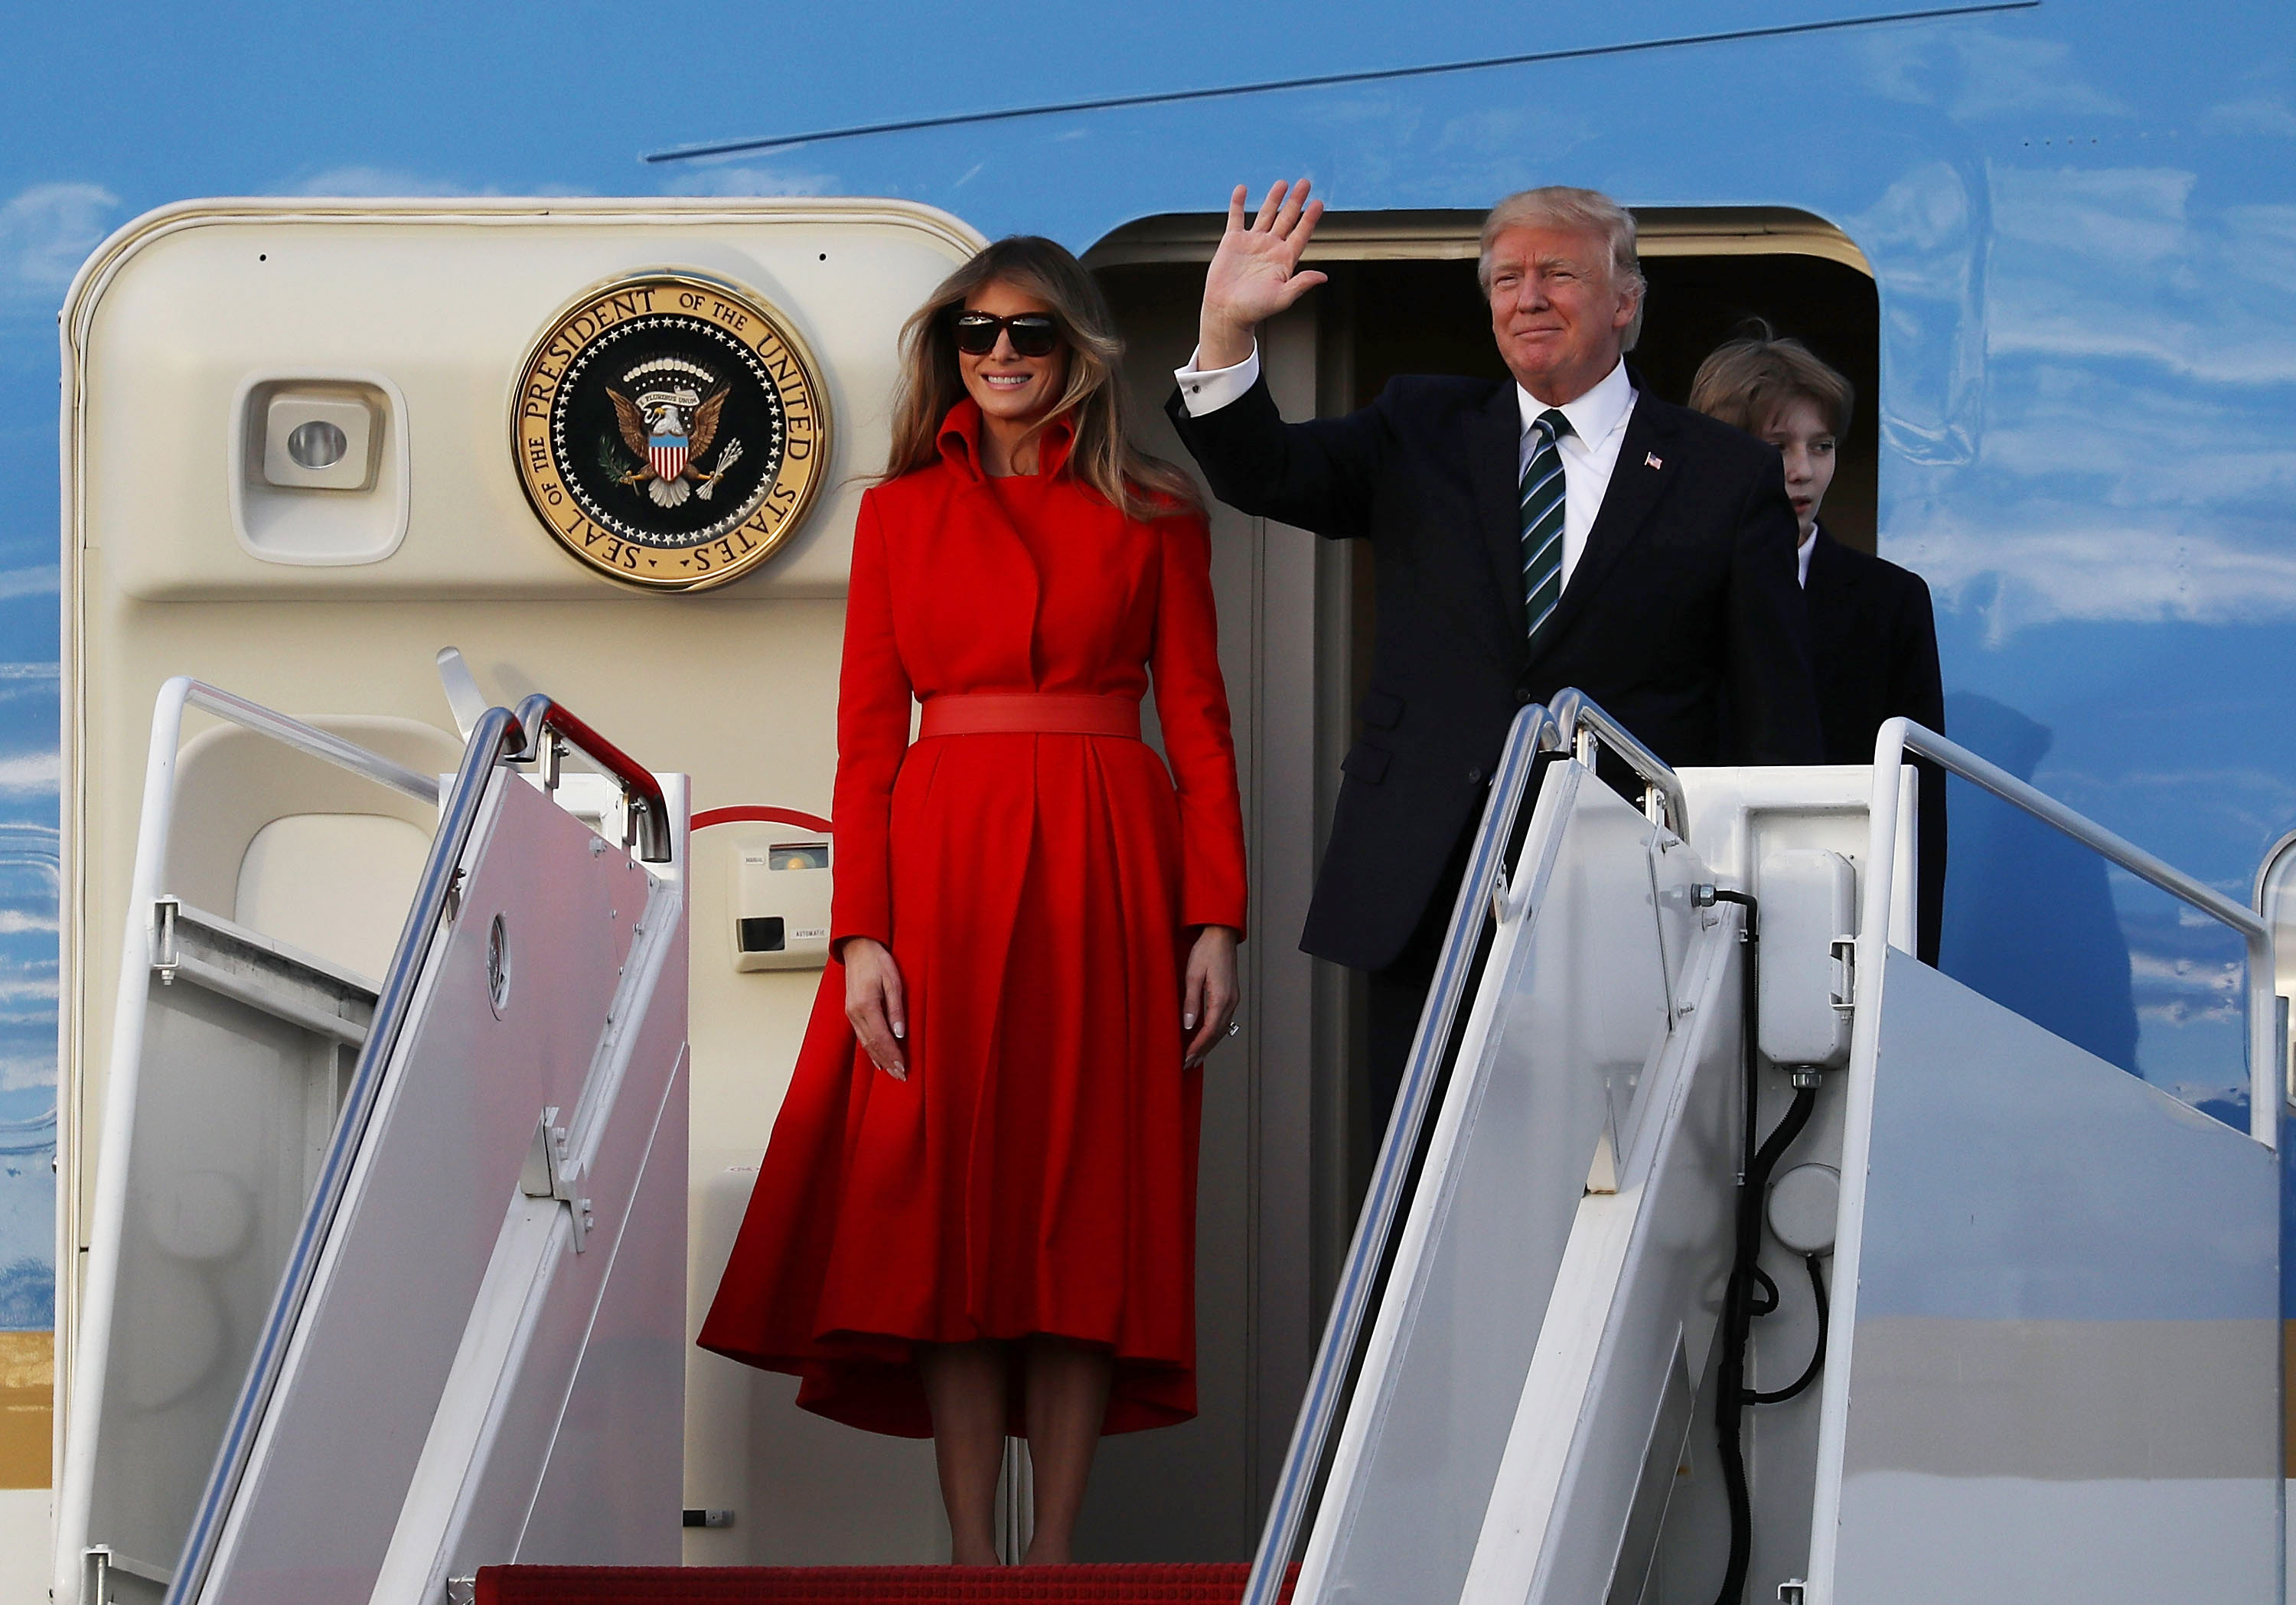 President Donald Trump, his wife Melania Trump and their son Barron Trump arrive together on Air Force One at the Palm Beach International Airport to spend part of the weekend at Mar-a-Lago resort on March 17, 2017 in West Palm Beach, Florida. Joe Raedle—Getty Images